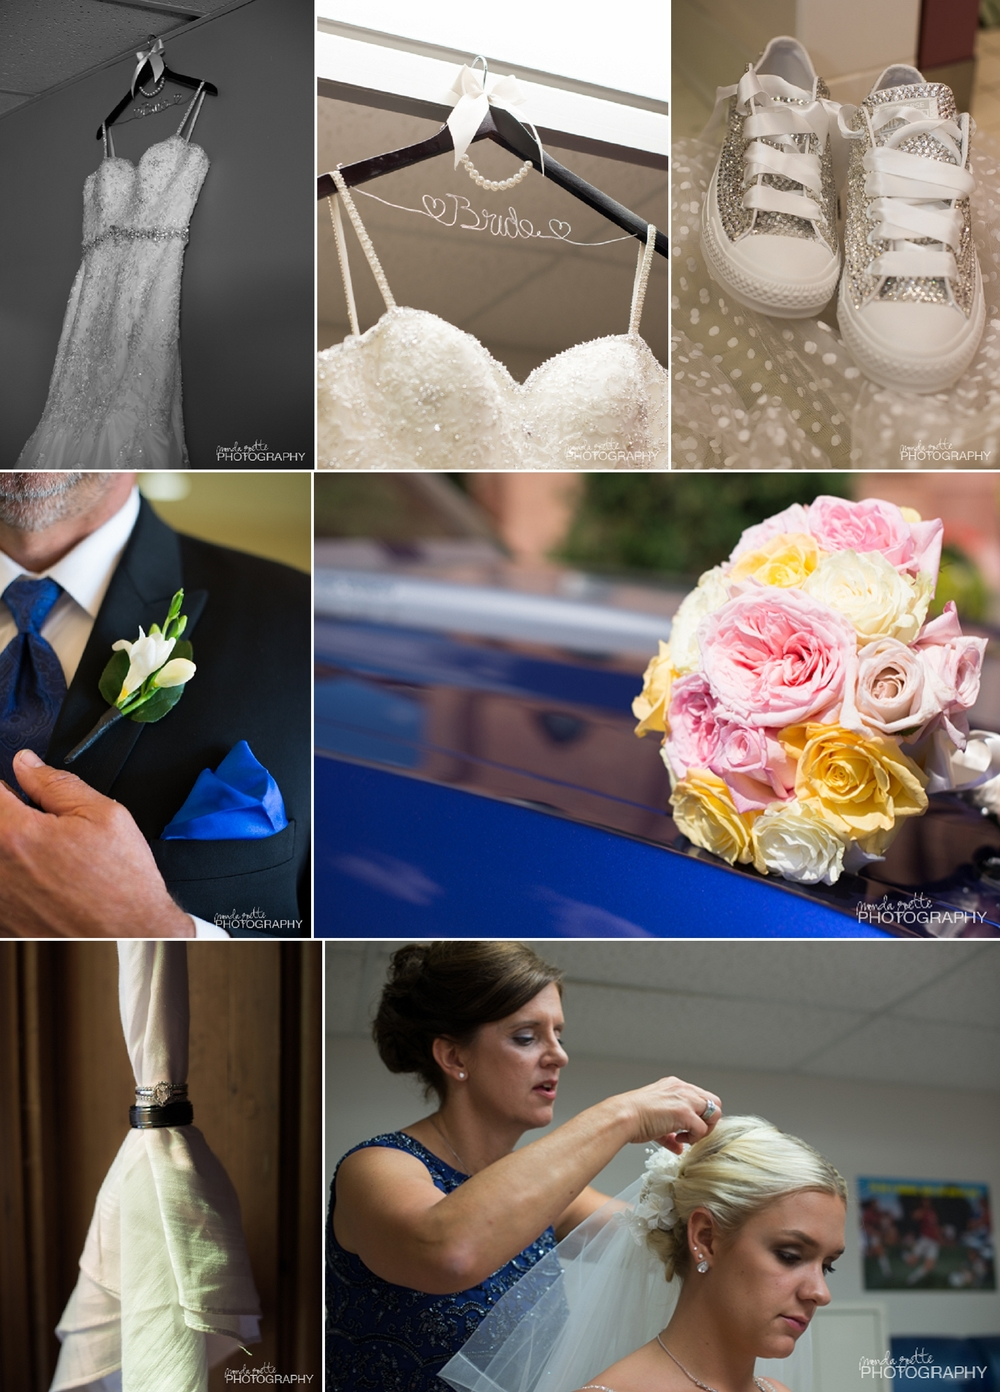 Details-of-the-Wedding-Day-Photography